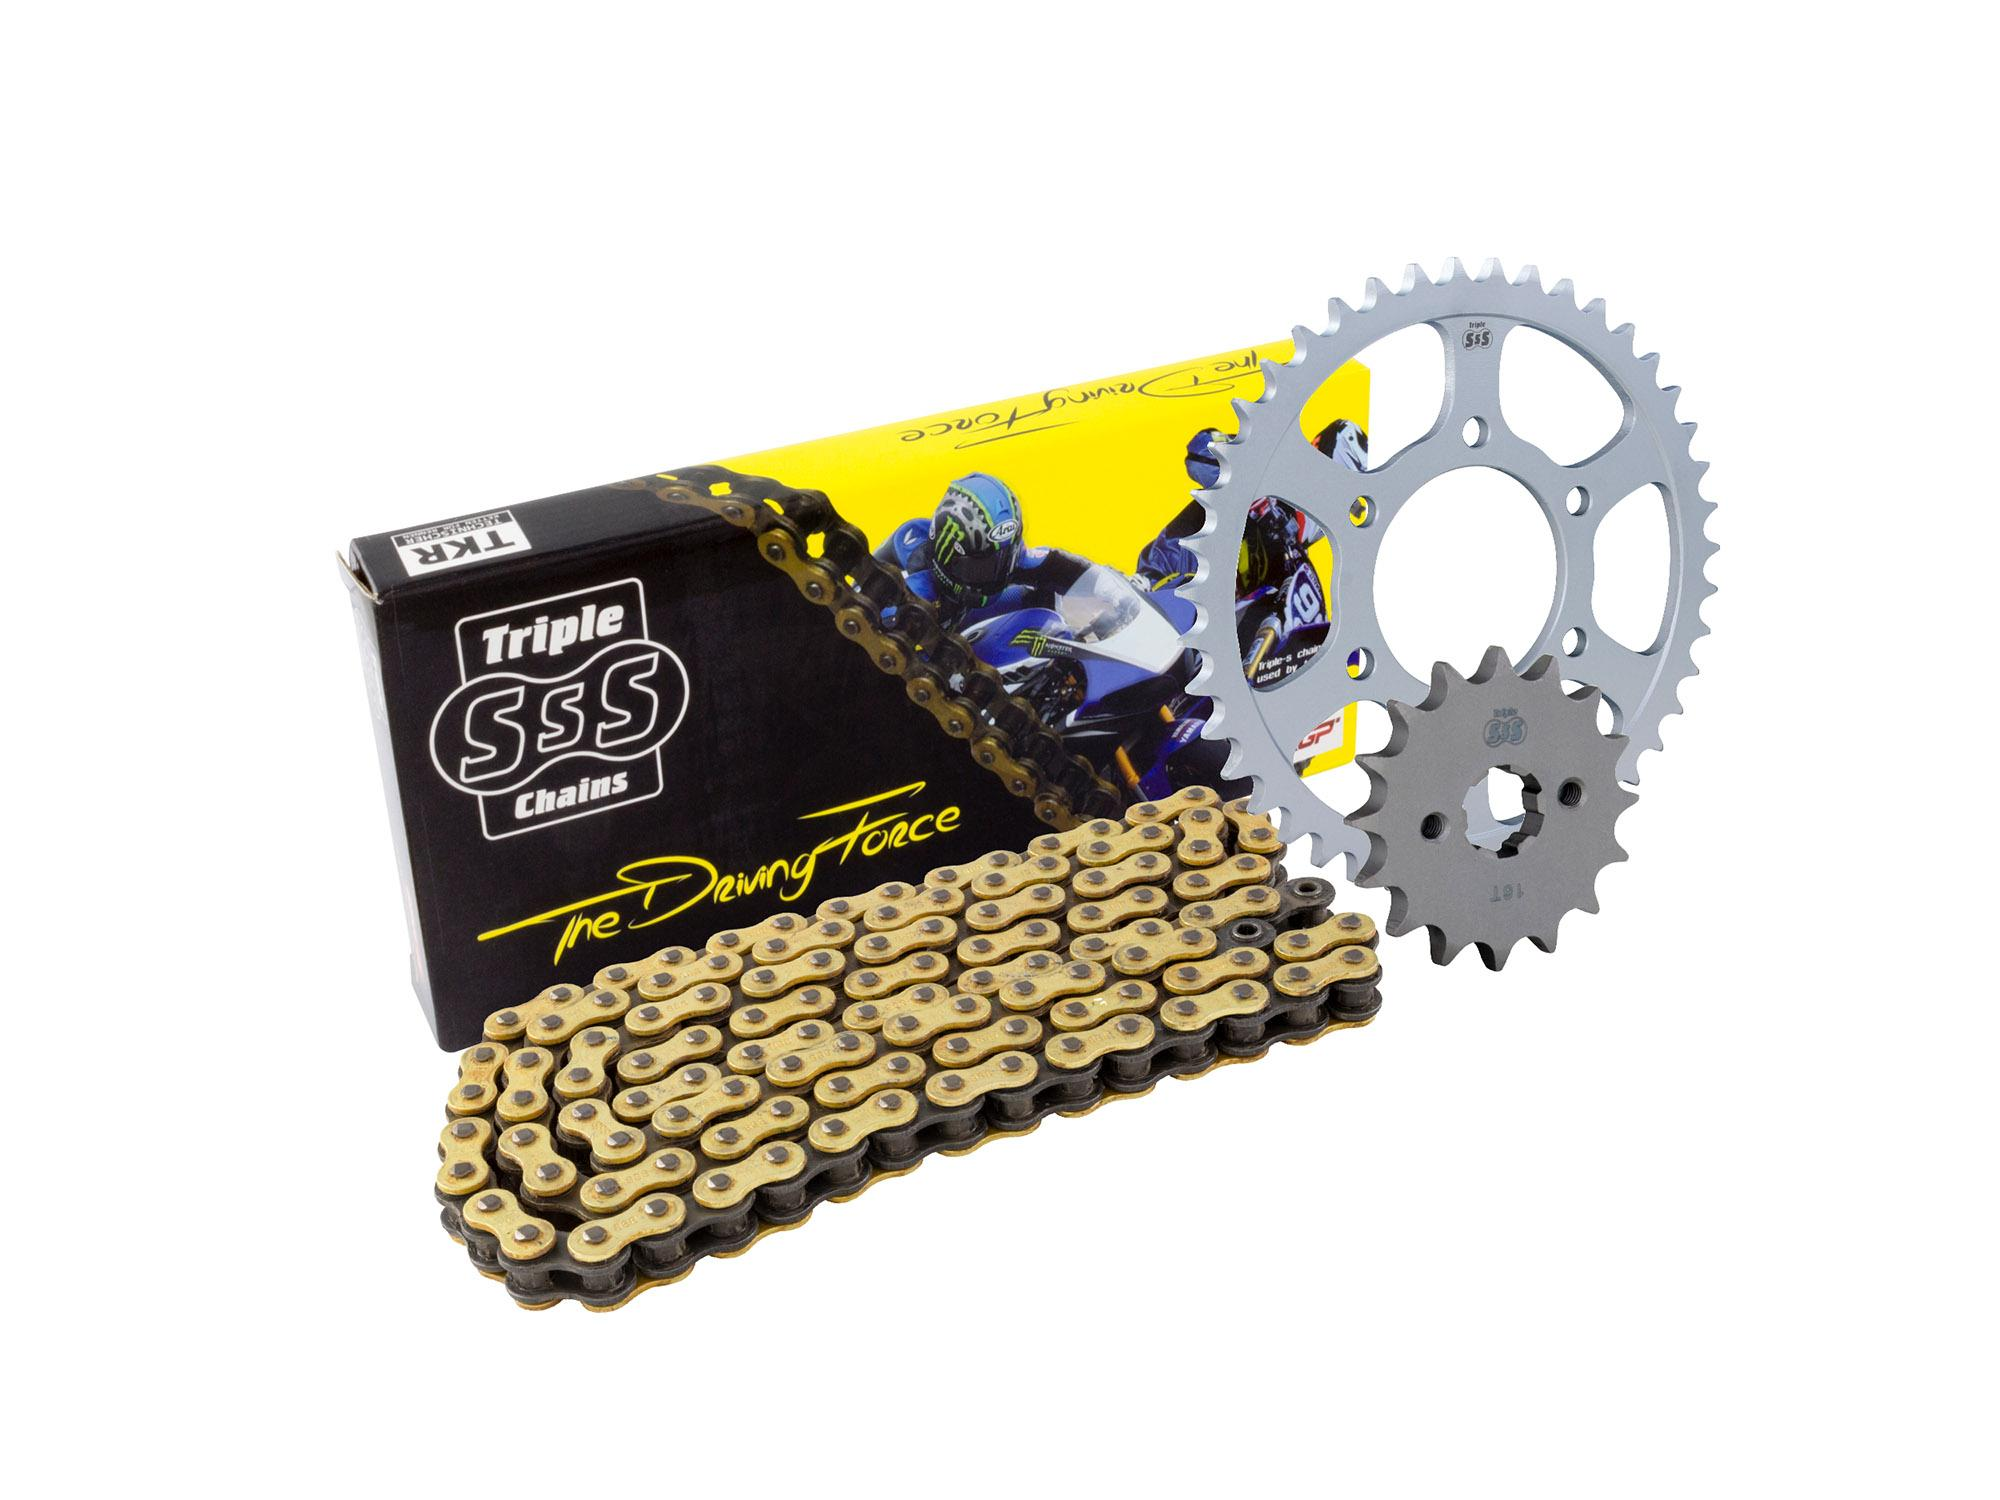 Suzuki GSX-R1300R Hayabusa / B-King 08-09 Chain & Sprocket Kit: 18T Front, 43T Rear, HD O-Ring Gold Chain 530H 118 Link